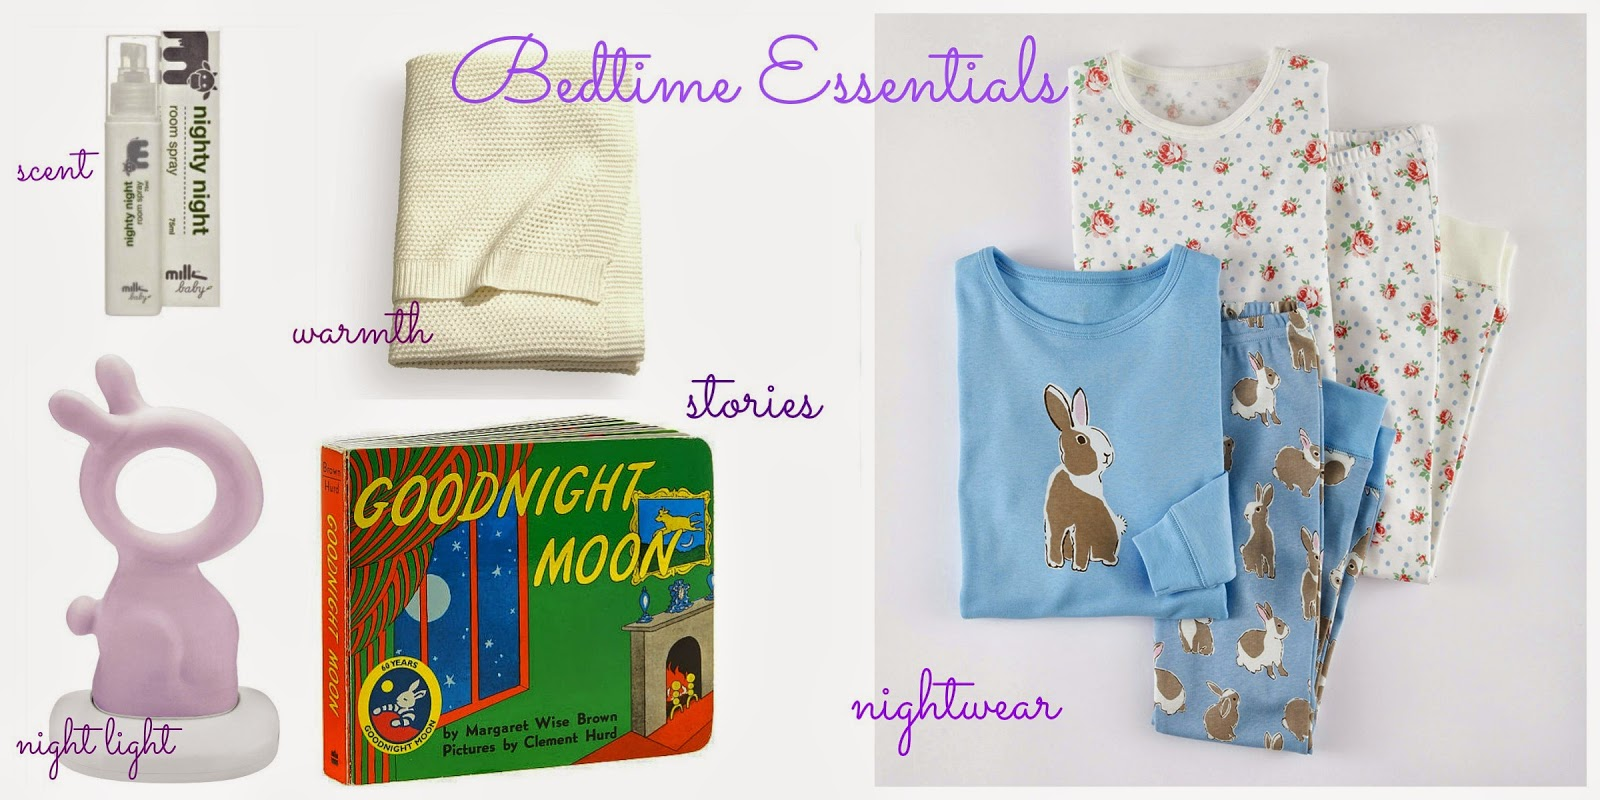 10 of our bedtime routine essentials (for a good night sleep)* | bedtime routine | brother max night light | geo egg | balck out blind | cot mobiles | sleeping tips for babies | toddler bedtime routine | boden pjs | childs farm bubble bath | bedtime stories | goodnight moon | nightwear | baby blankets | bedroom buys for girls | bedtime tips | mamasVIb | blog | blogger | mamas VIB | bedtime tricks | sleeping habits | toddler bedtime